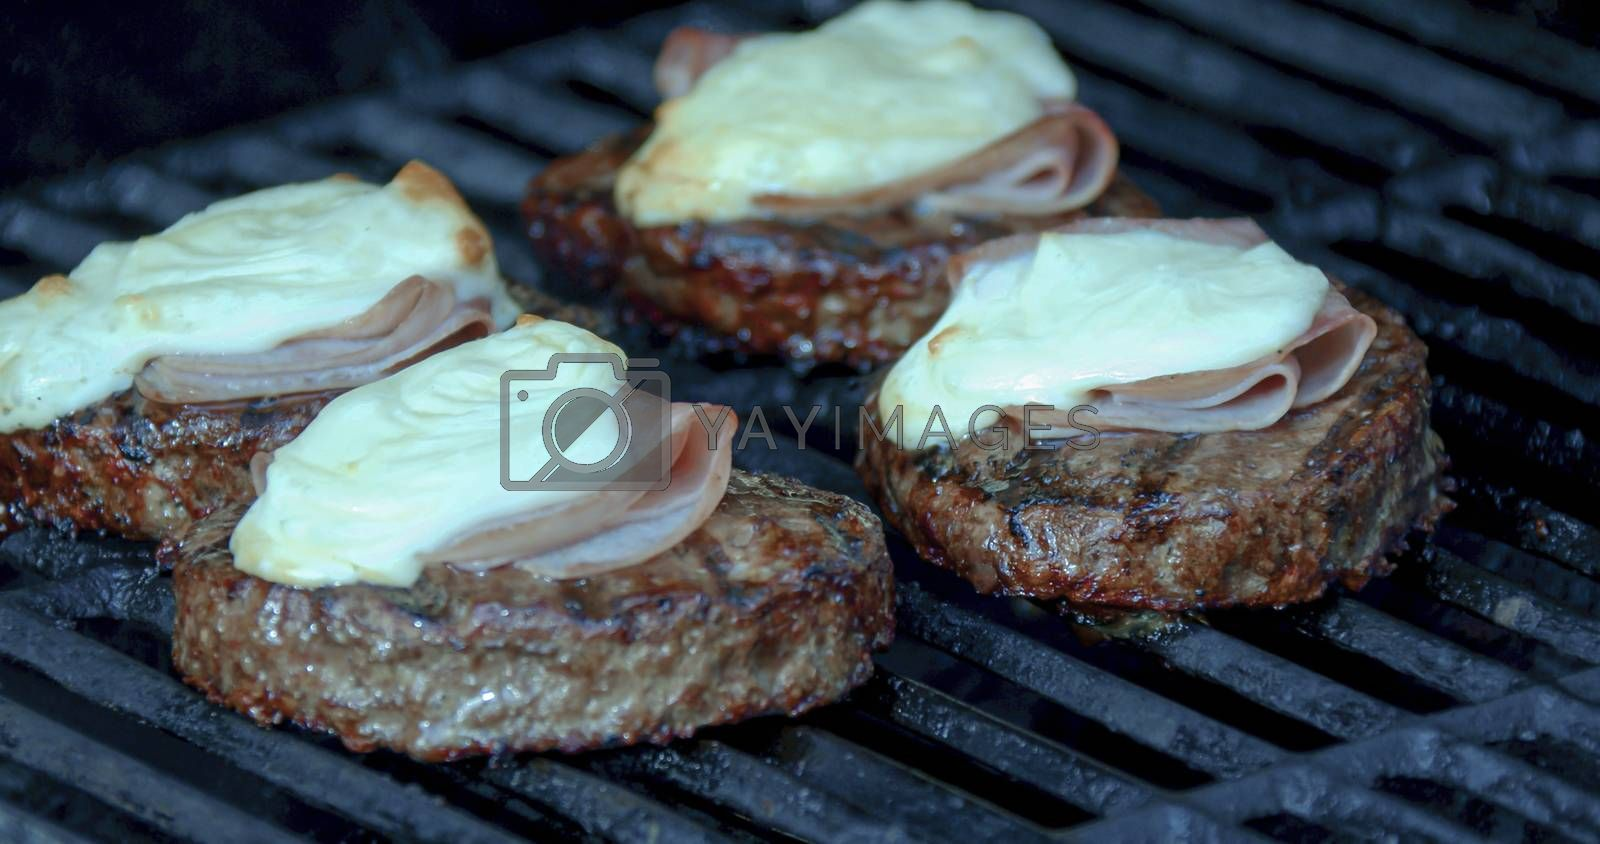 Cooking a burger patty with melted cheese and ham on a grill